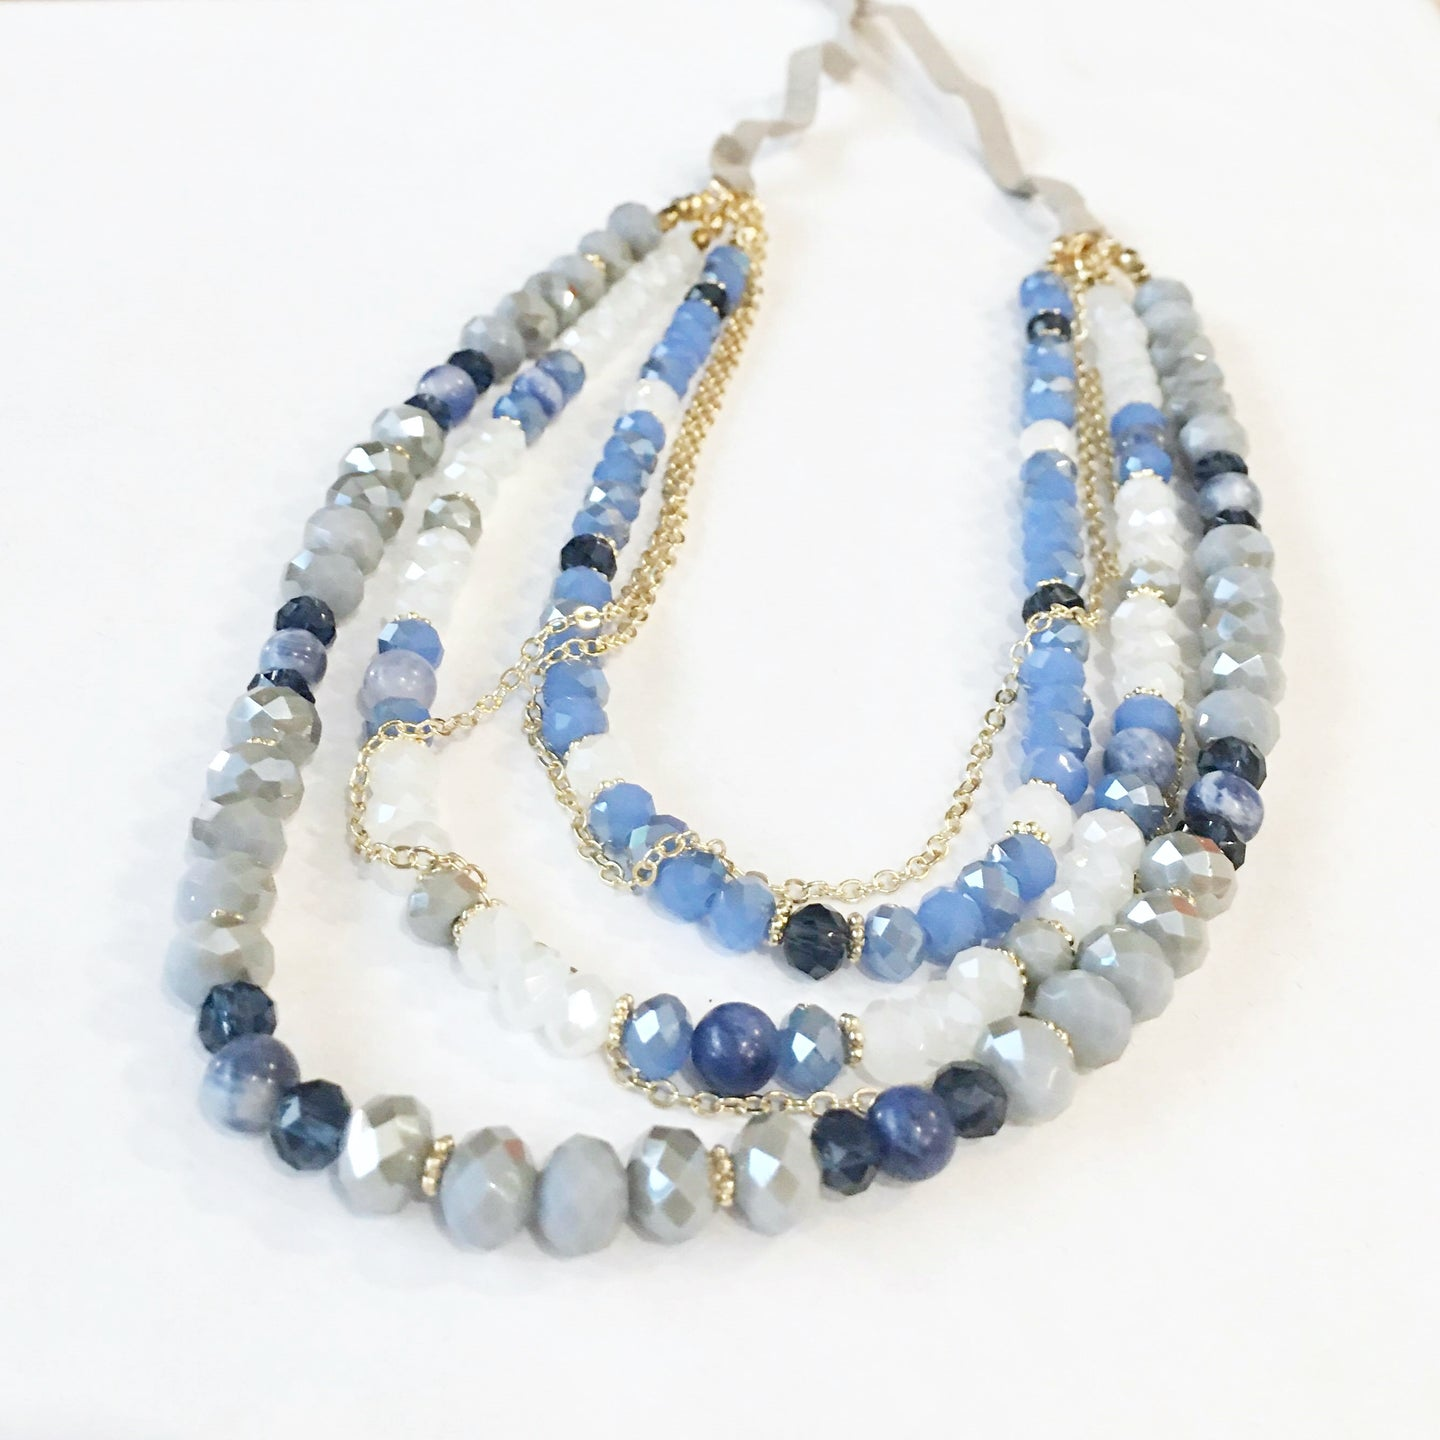 Oceans Blue Adjustable Necklace